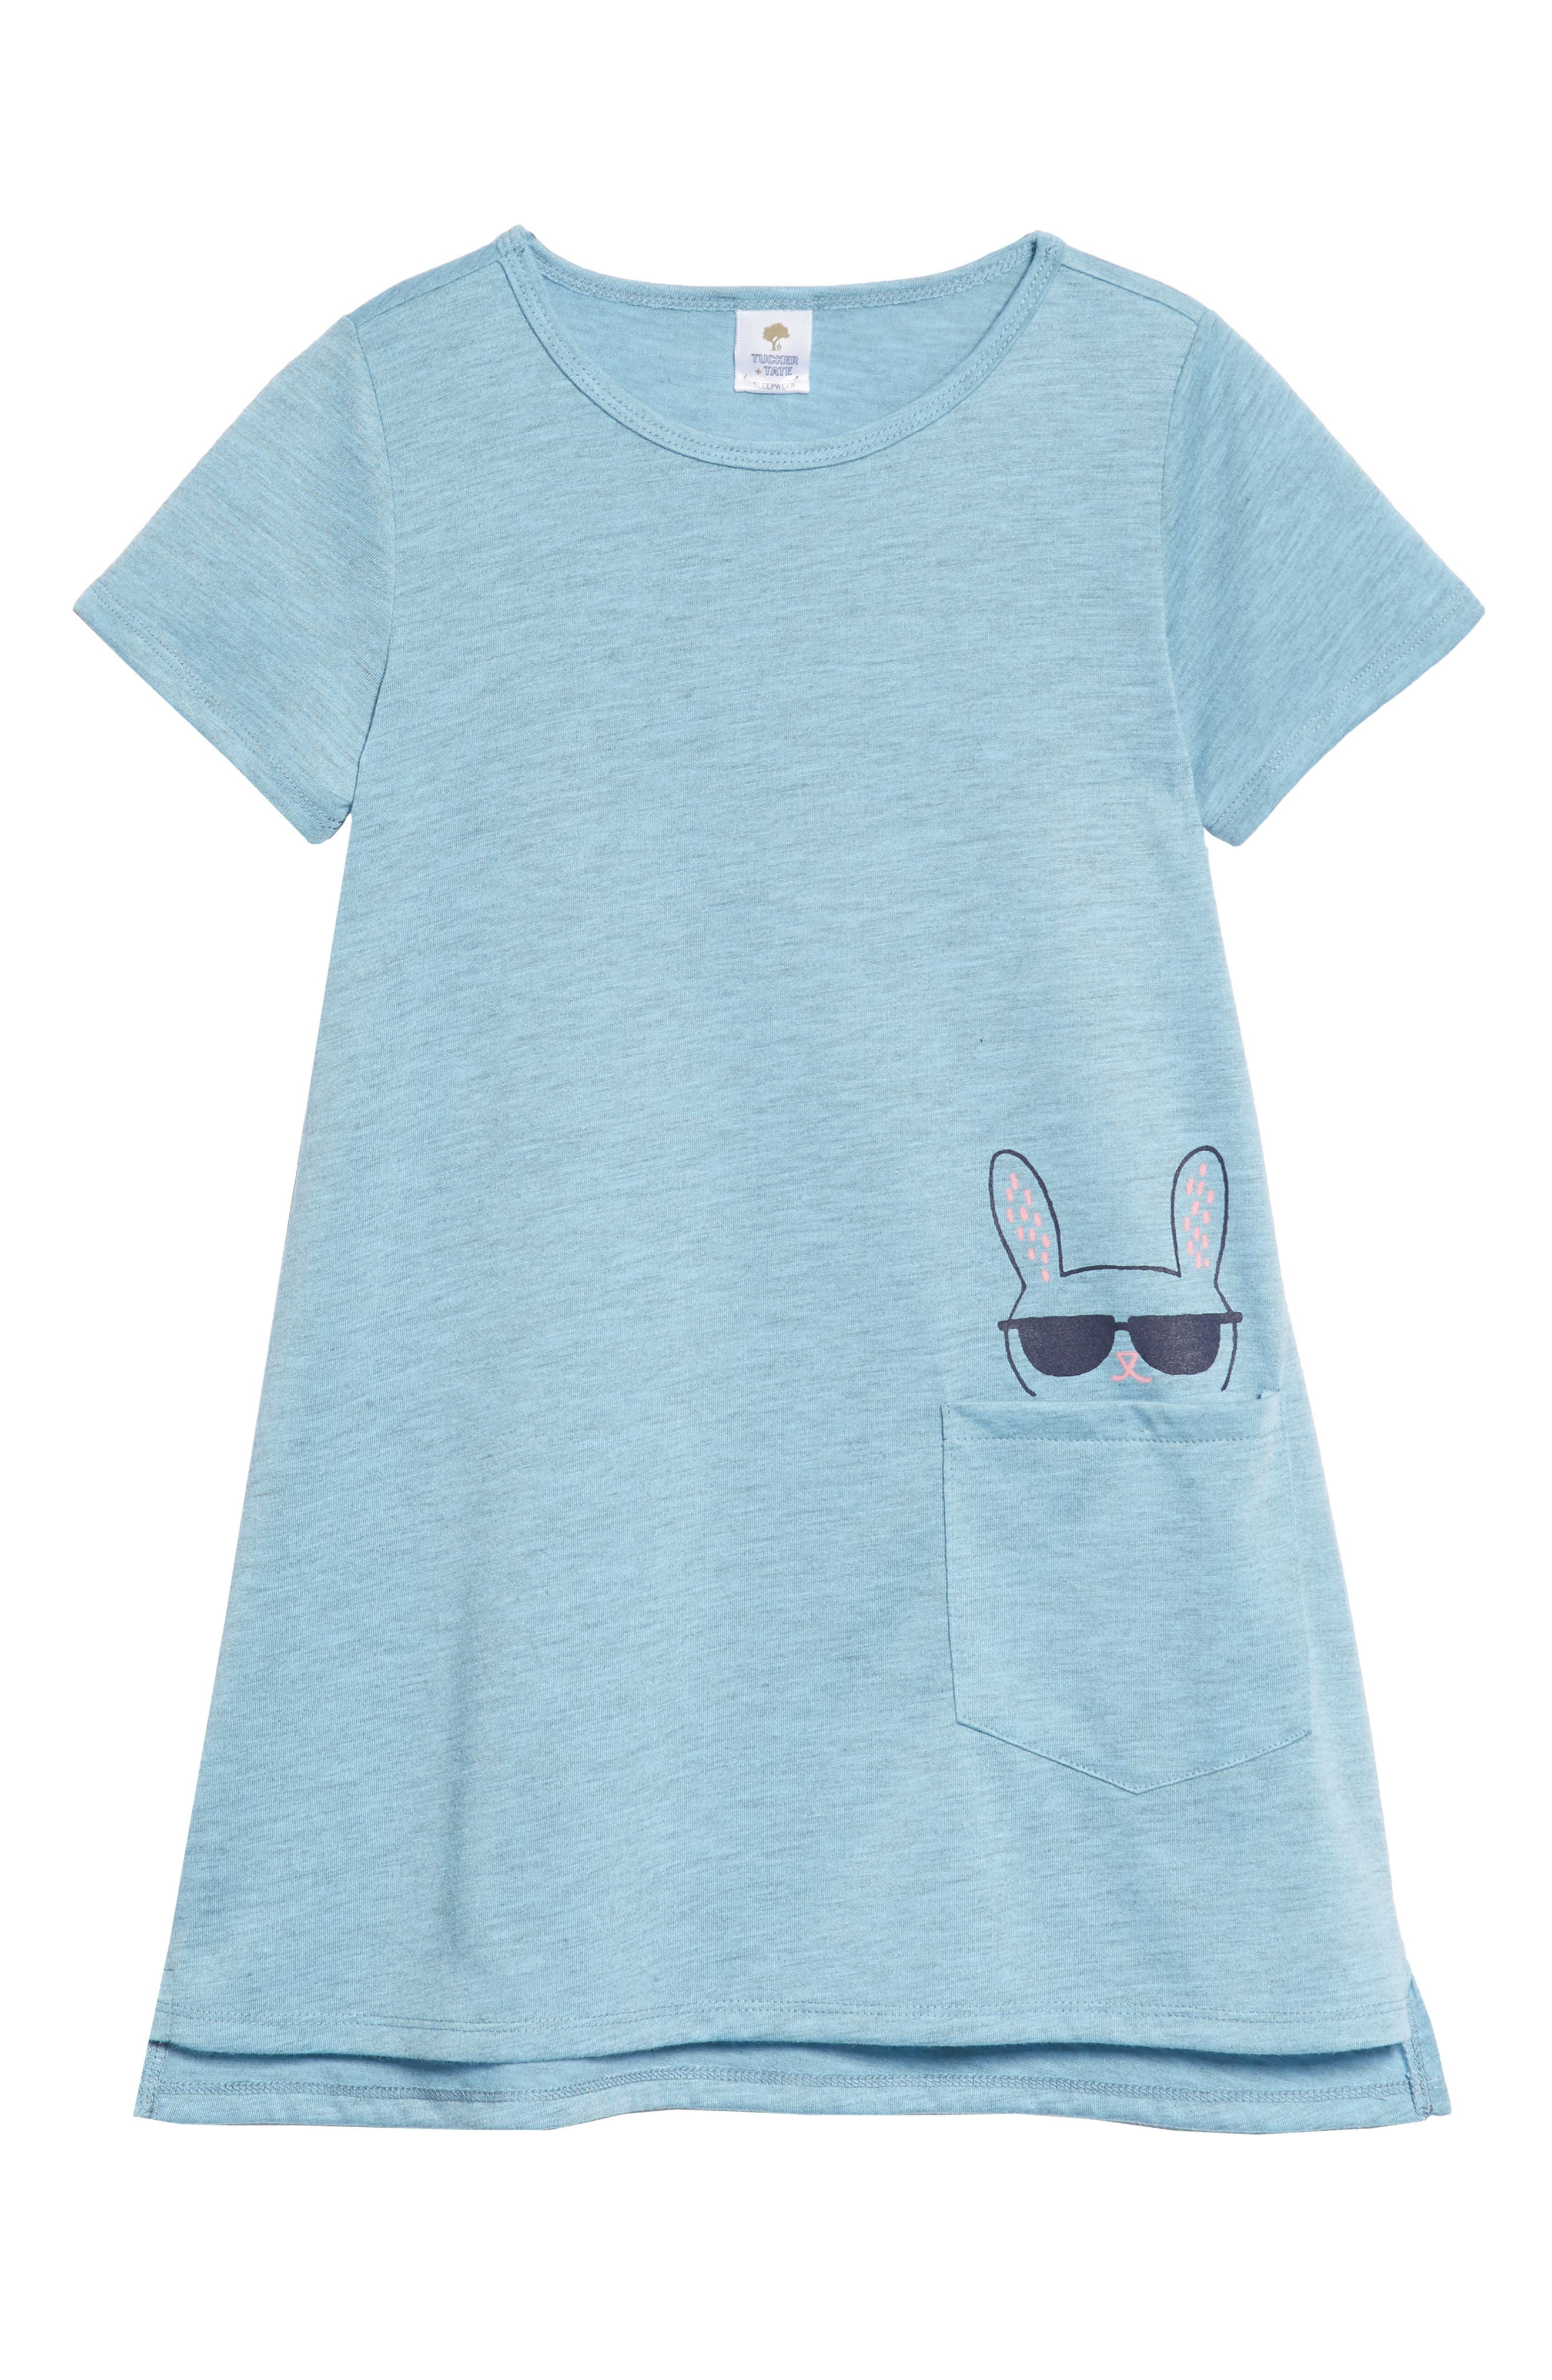 Tucker+Tate Pocket Dress,                         Main,                         color, Blue Sky Heather Cool Bunny